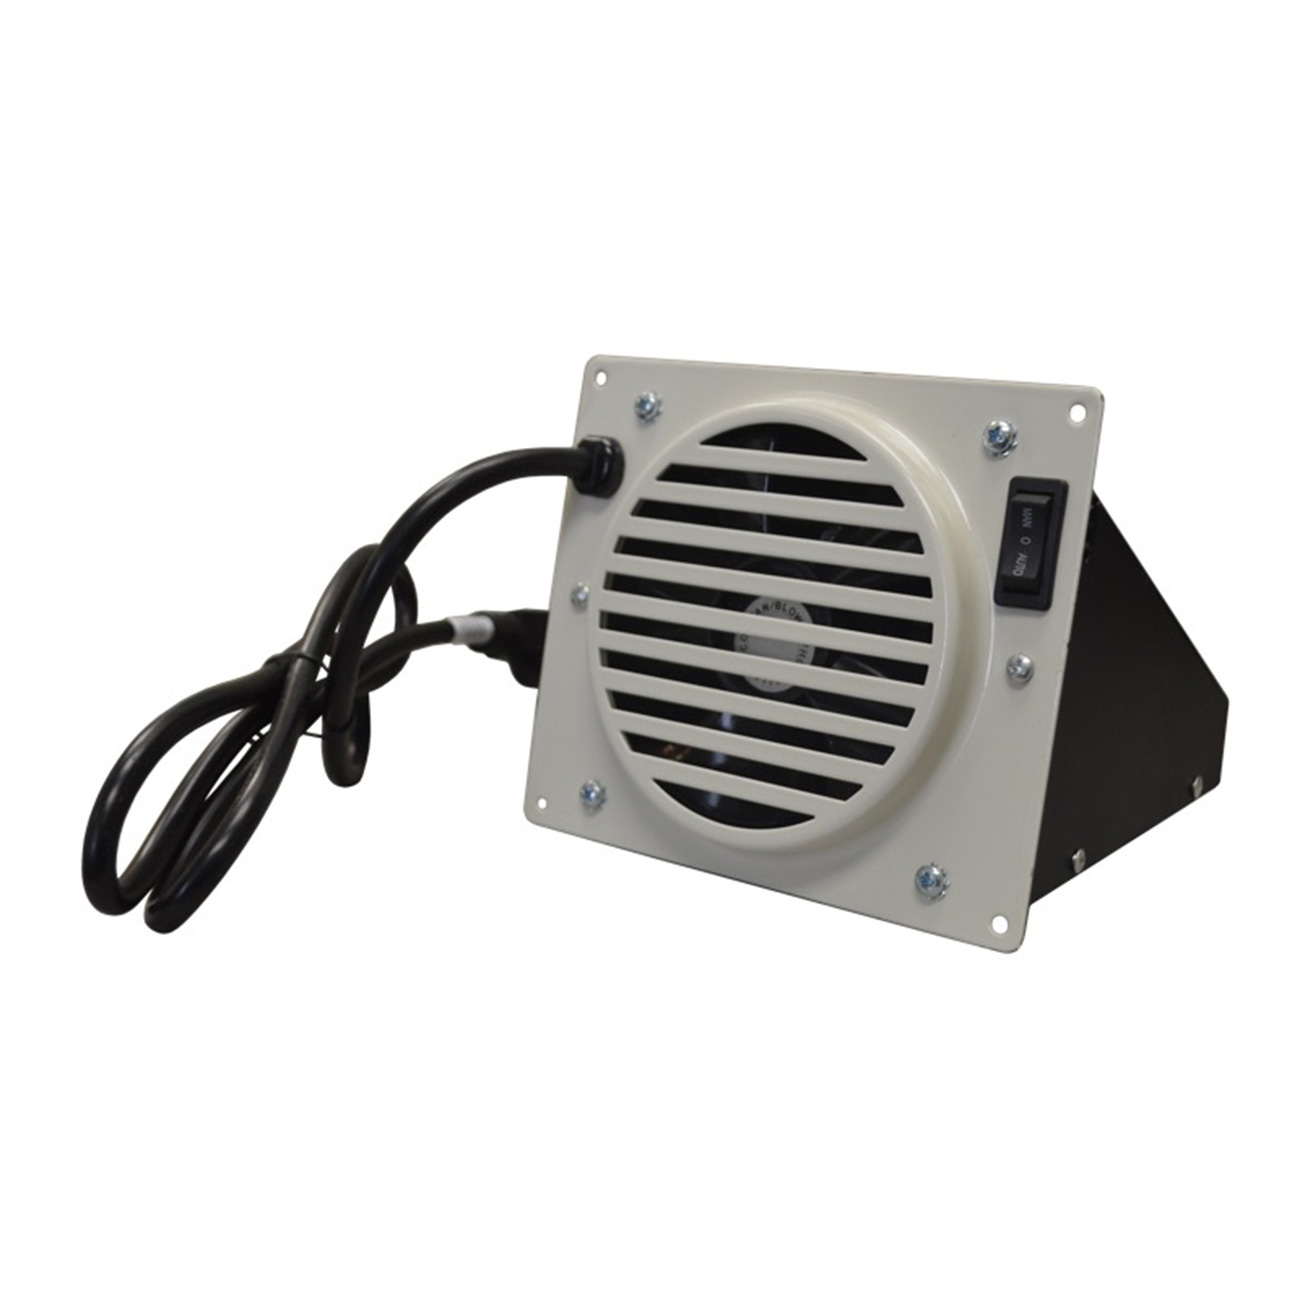 Mg Wall Heater Blower For Units Over 10 000 Btu Mg Models